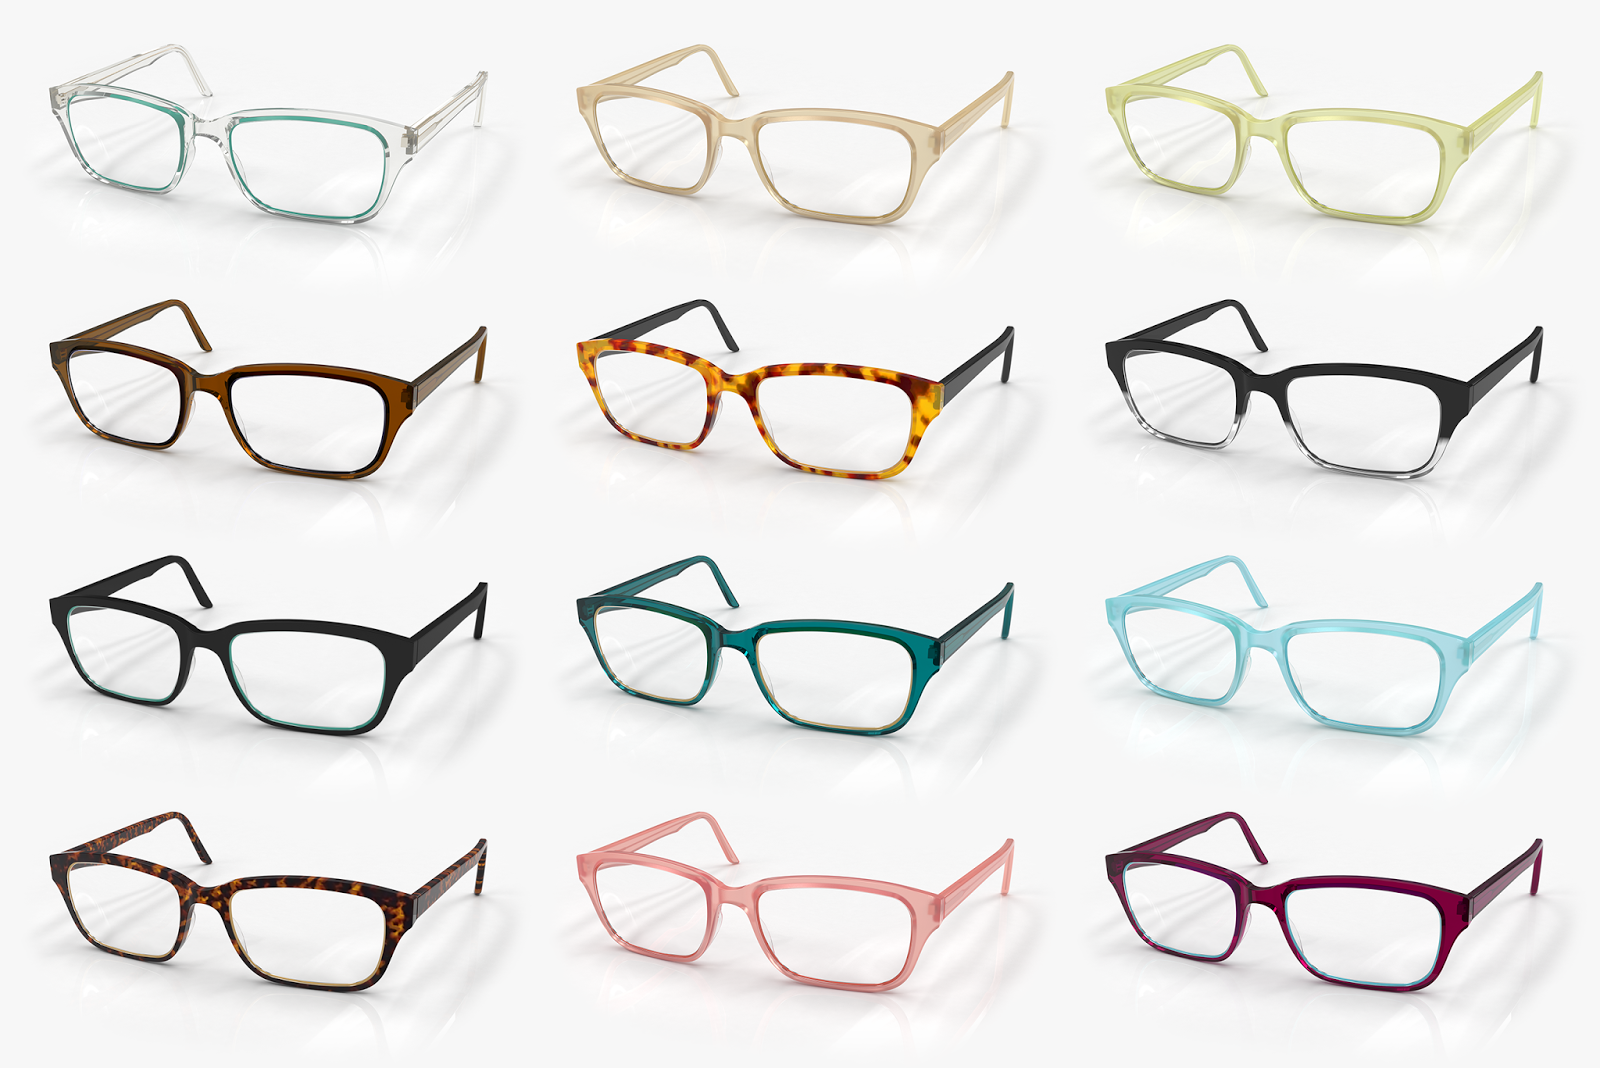 Eyeglass Frames Changeable Arms : The Well-Appointed Catwalk: Interchangeable Frames by Frameri